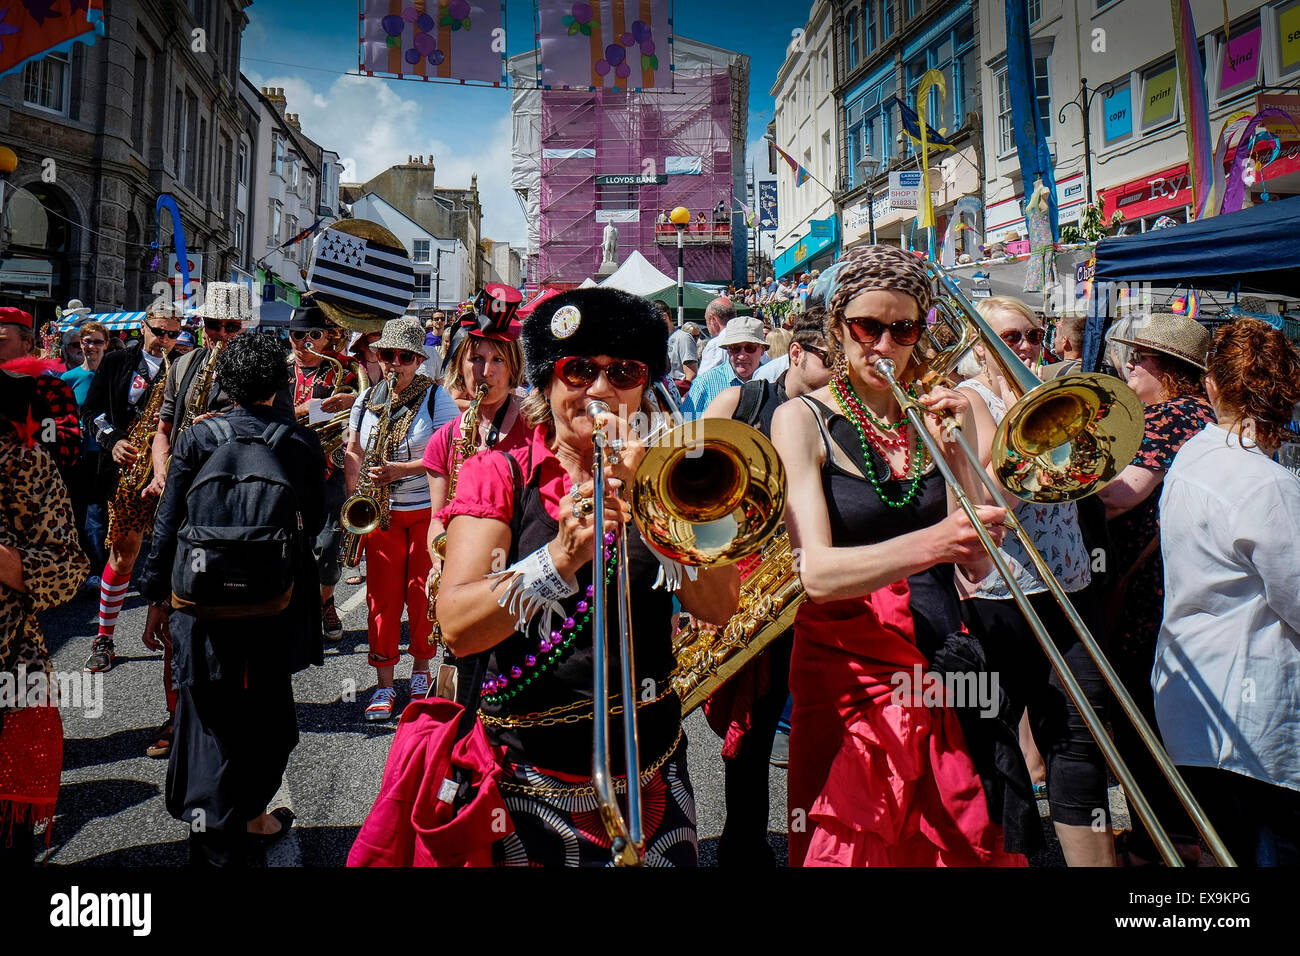 Maze Day - the Breton street band Pattes a Caisse lead one of the colourful parades on Mazey Day, part of the Golowan - Stock Image